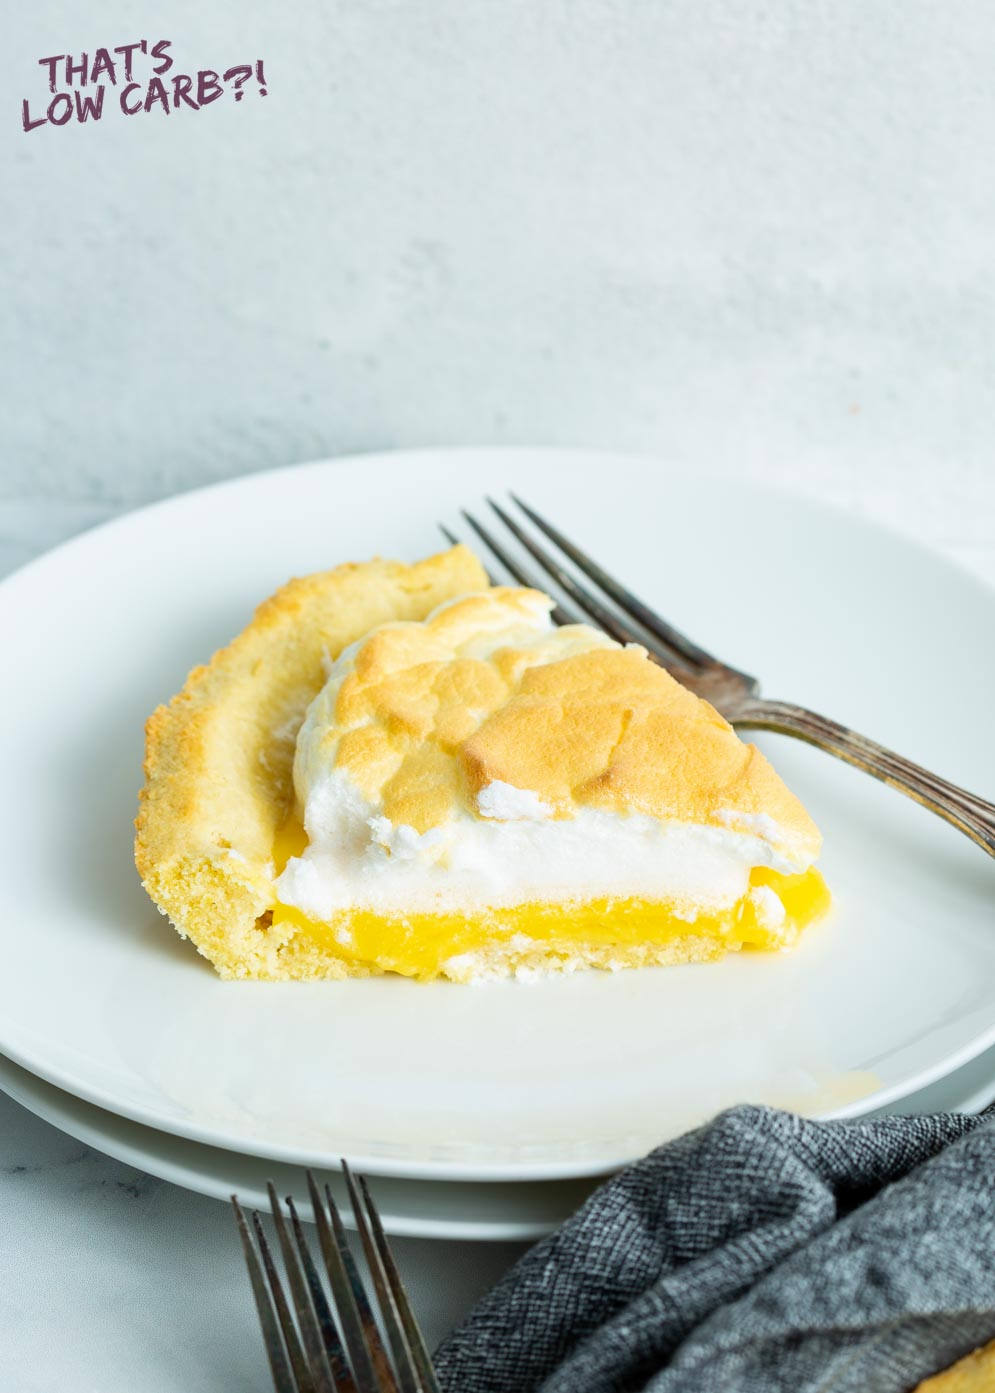 Slice of Sugar-Free Lemon Meringue Pie on small white plate with fork